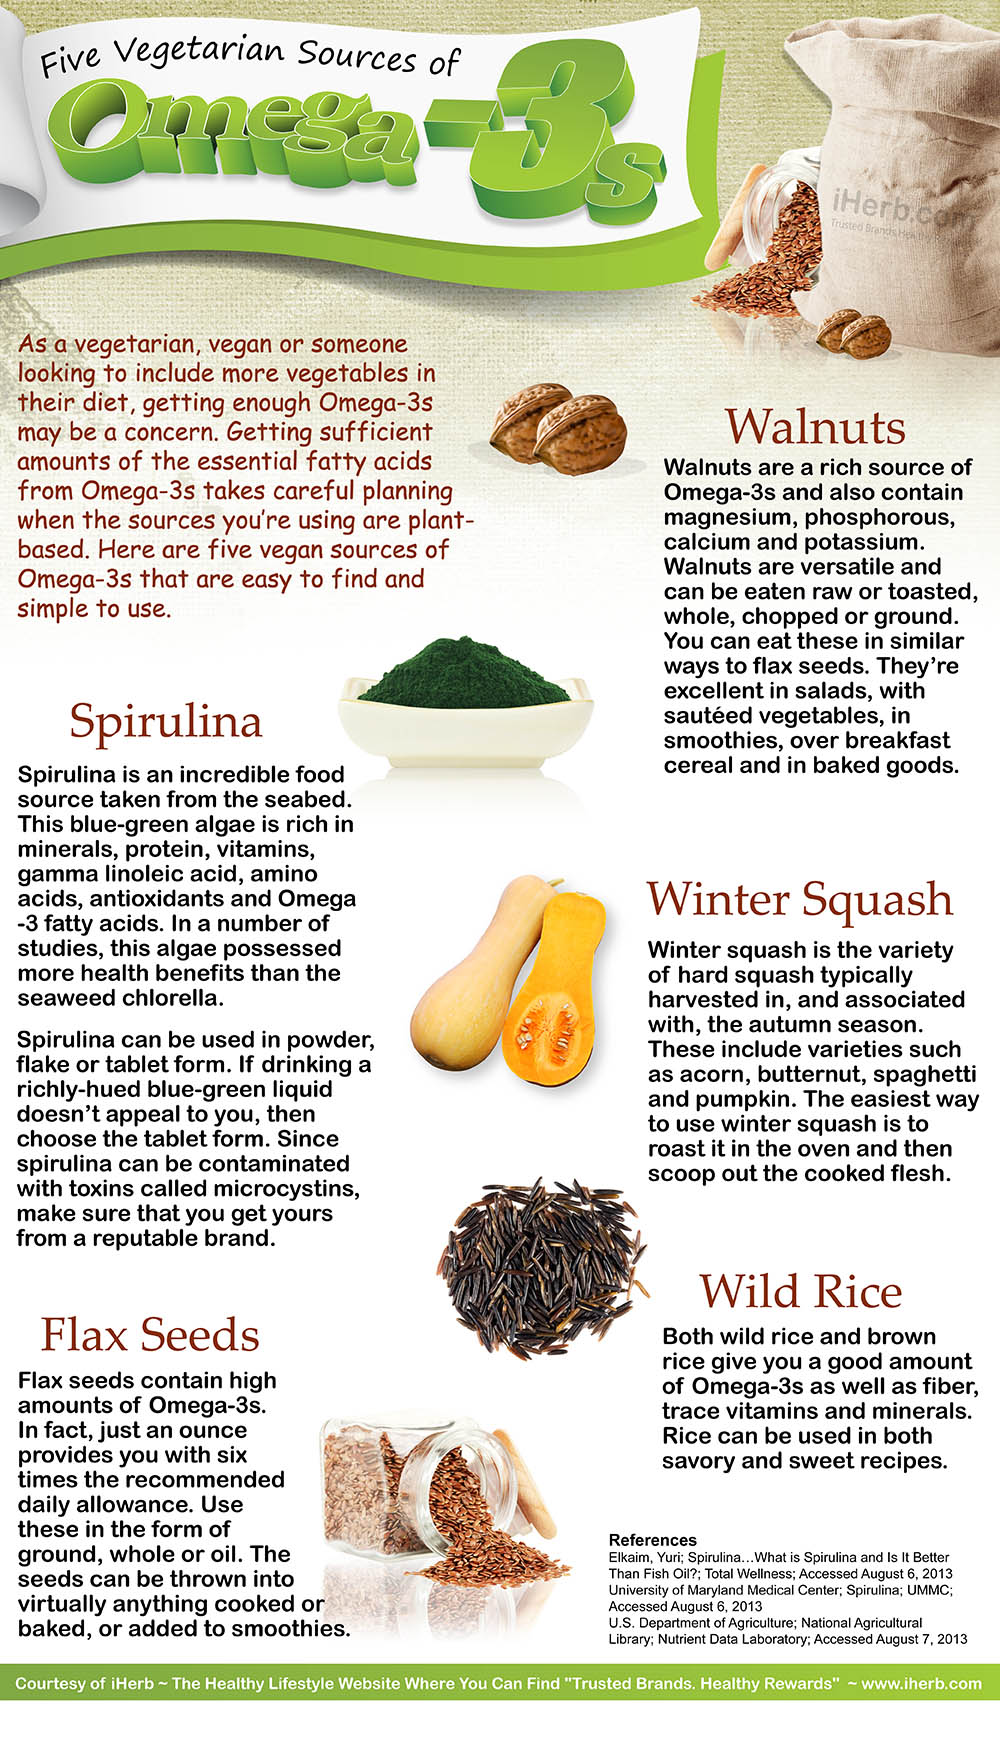 10 Vegetarian Sources of Omega-3 Fatty Acids foto